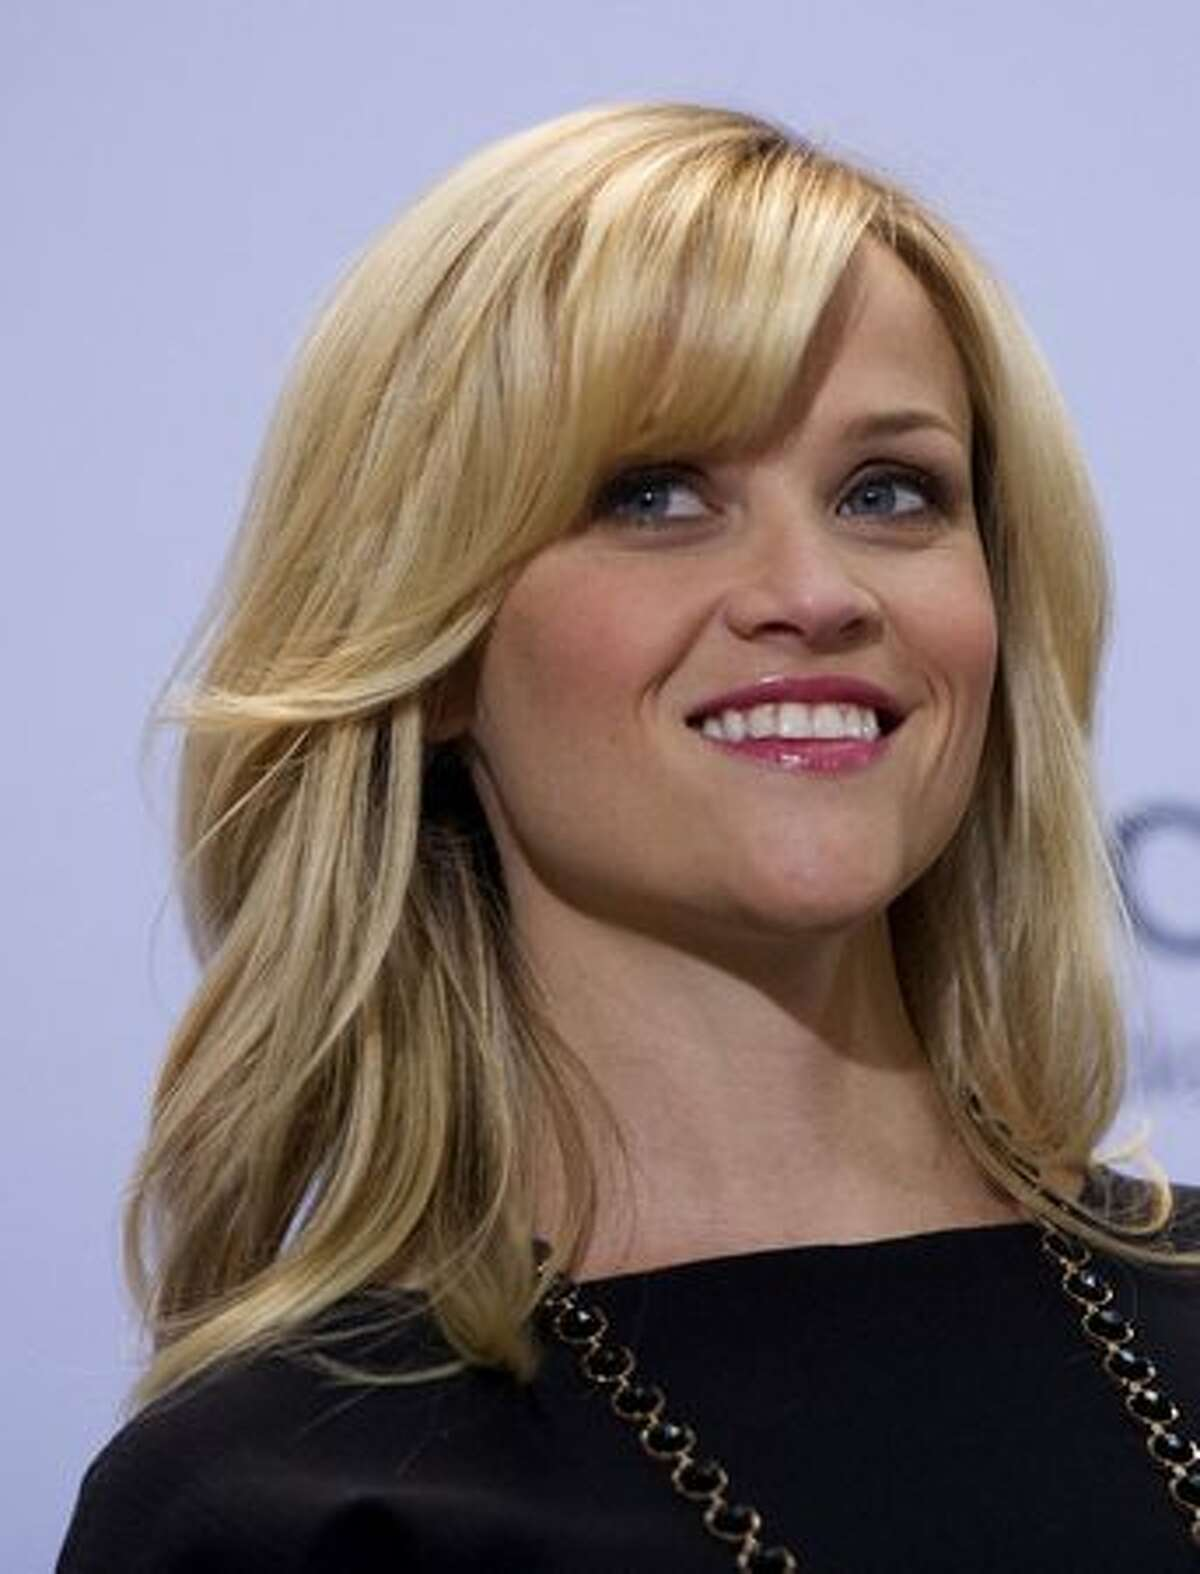 """Actress Reese Witherspoon poses during a photocall to promote her film """"Woher weisst Du, dass es Liebe ist"""" (How Do You Know) in Berlin."""